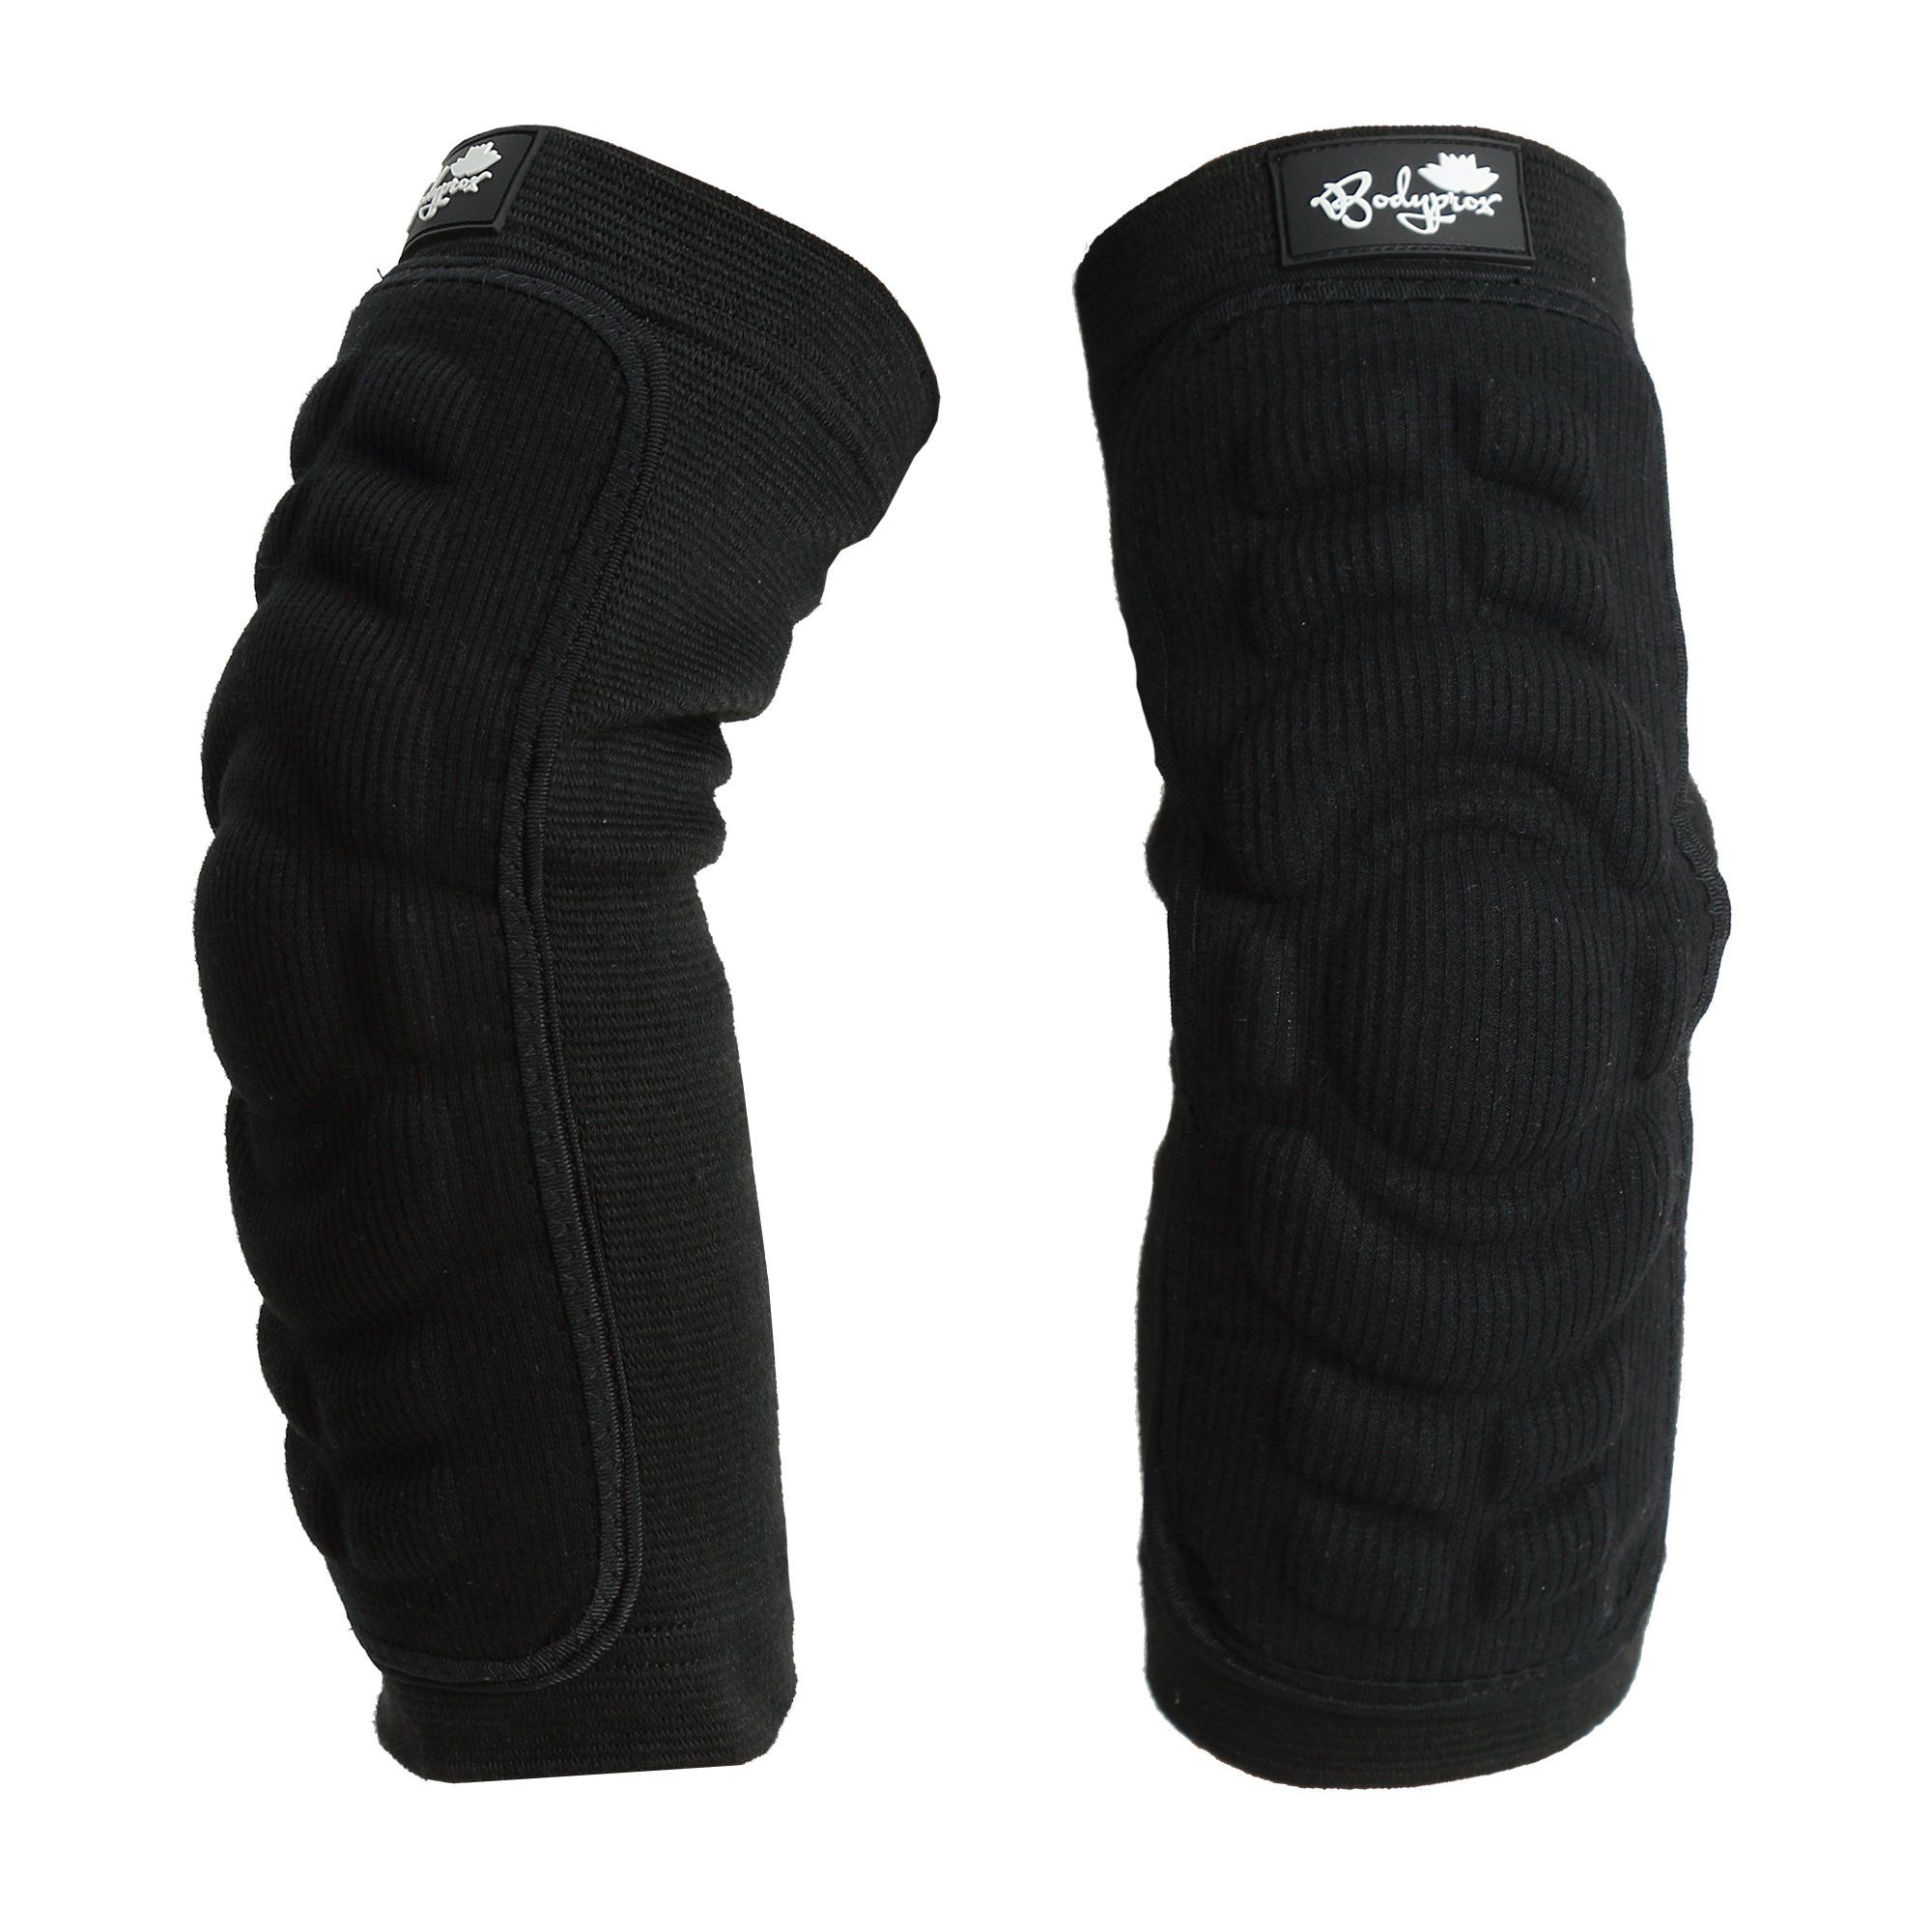 Bodyprox Elbow Protection Pads 1 Pair Elbow Guard Sleeve Details Can Be Found By Clicking On The Image This Is An In 2020 Elbow Support Body Padding Elbow Pads